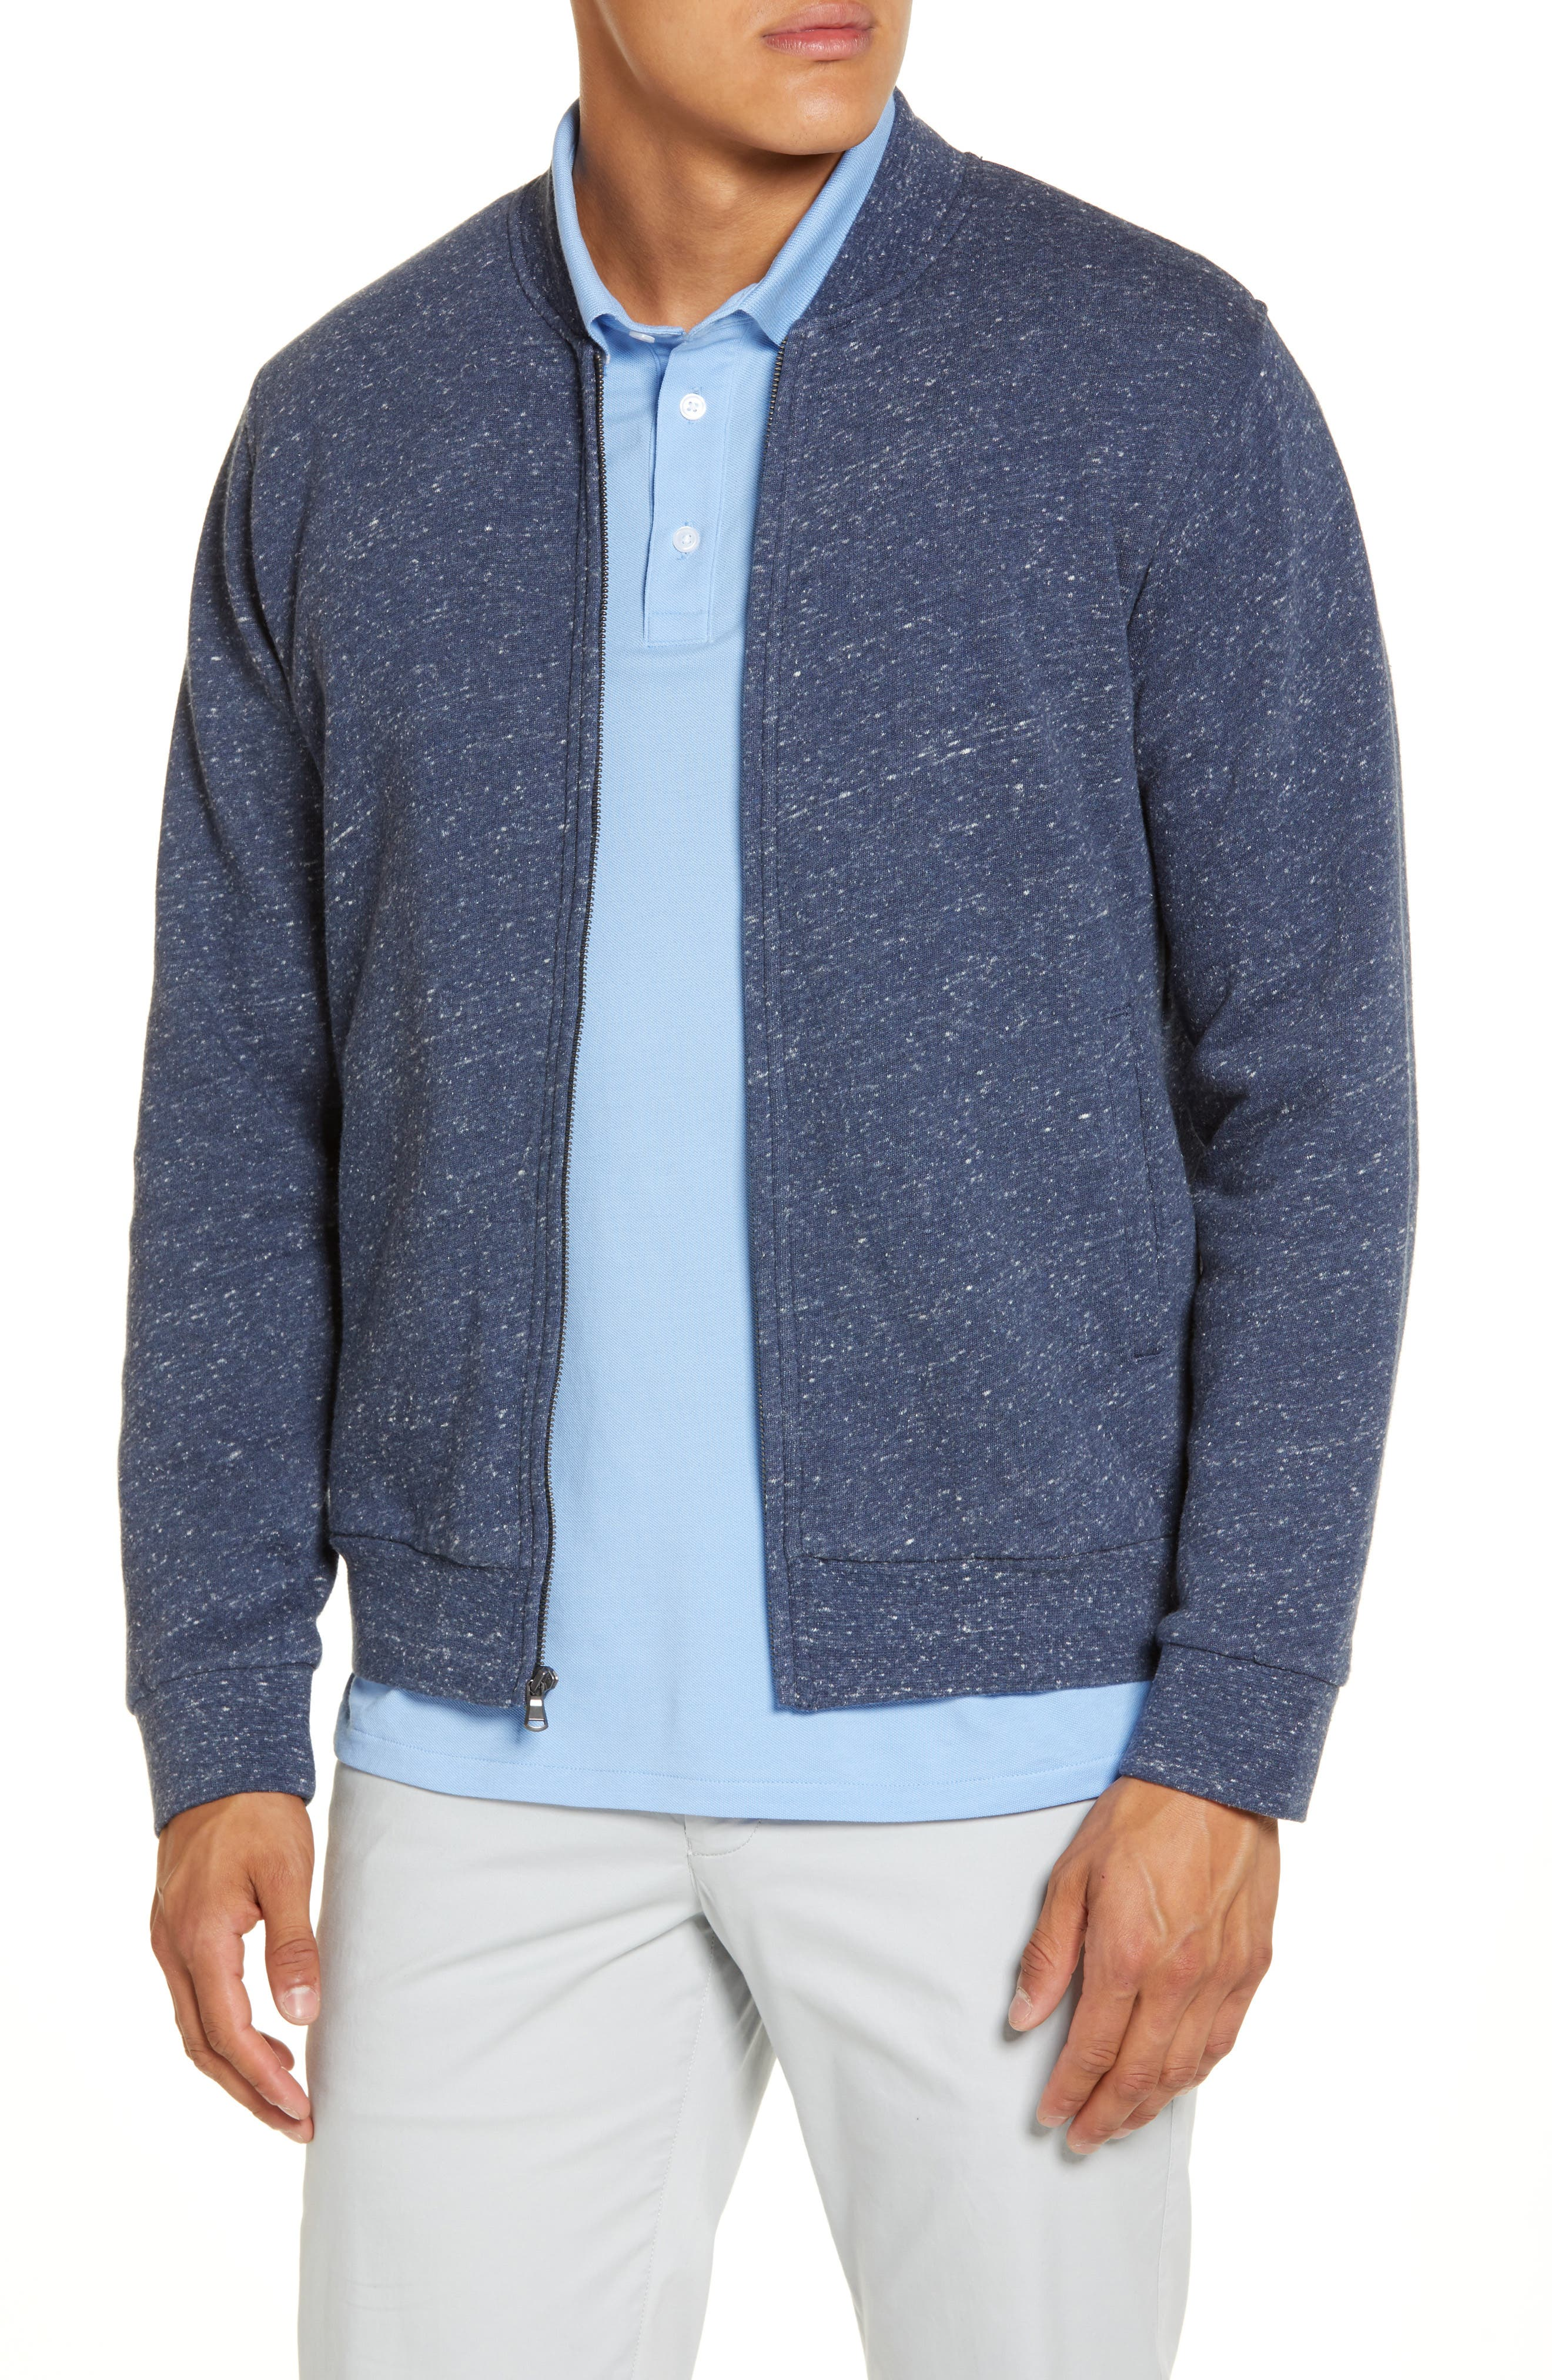 When a cold snap hits, only fleece will do, so reach for this trim jacket-including convenient pockets and a baseball collar-and go cozy. Style Name: Bonobos Slim Fit Fleece Baseball Jacket. Style Number: 6053870. Available in stores.